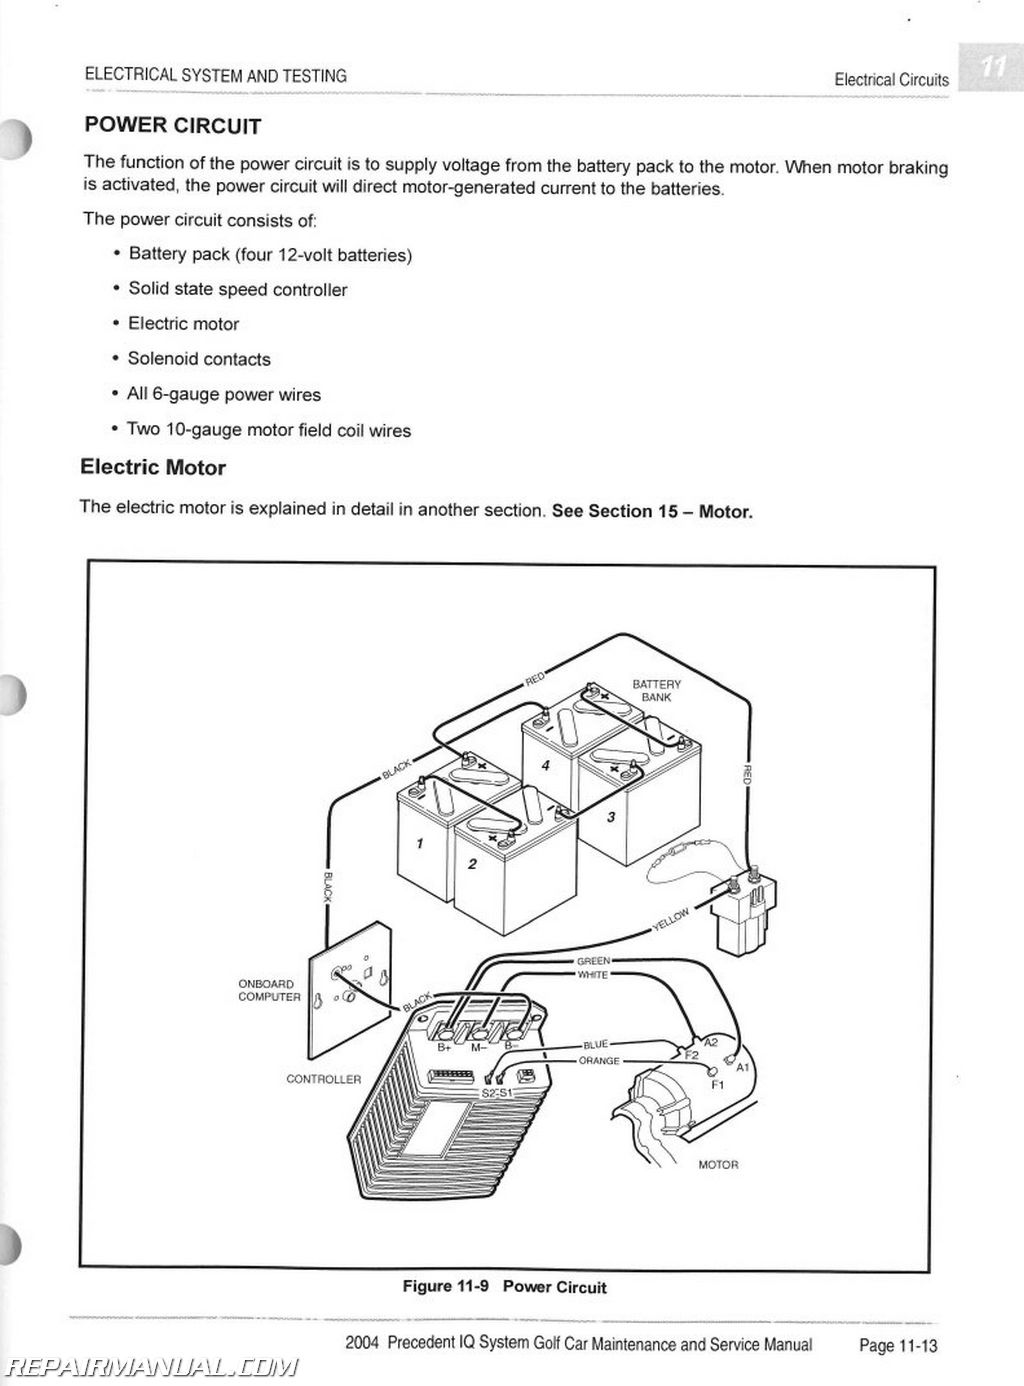 Mci Bus Wiring Schematic Club Diagram On Car Golf Carts My Simple Guide About 2012 Precedent 38